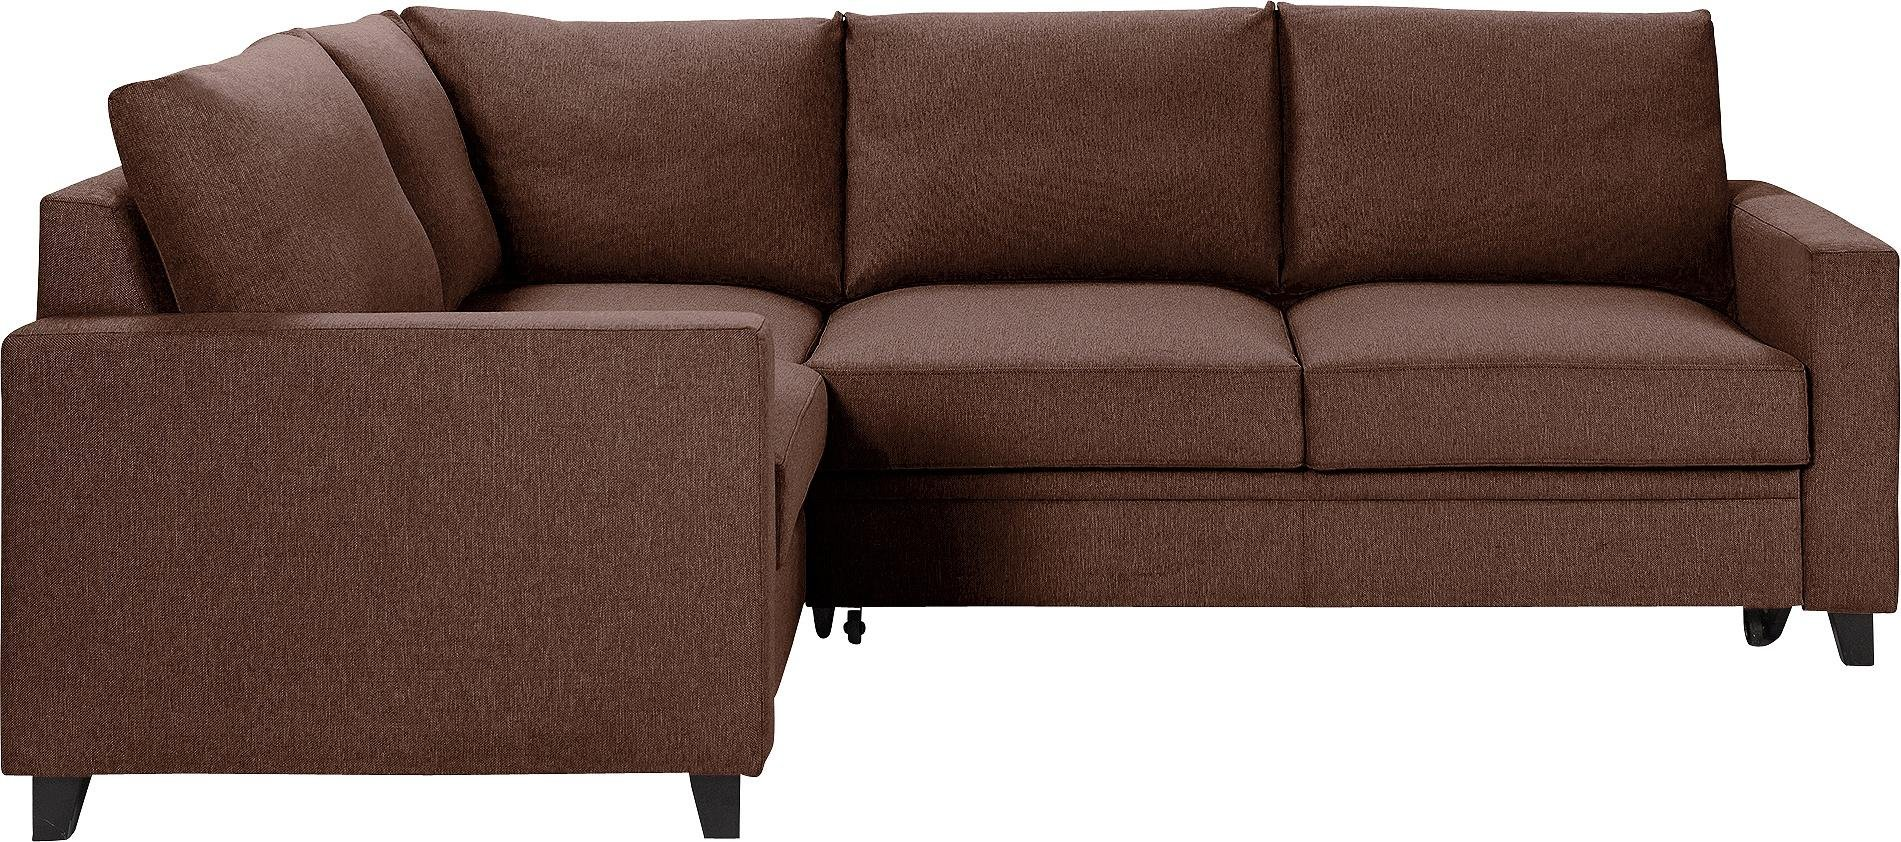 Hygena Seattle Fabric Left Hand Corner Sofa Bed - Brown